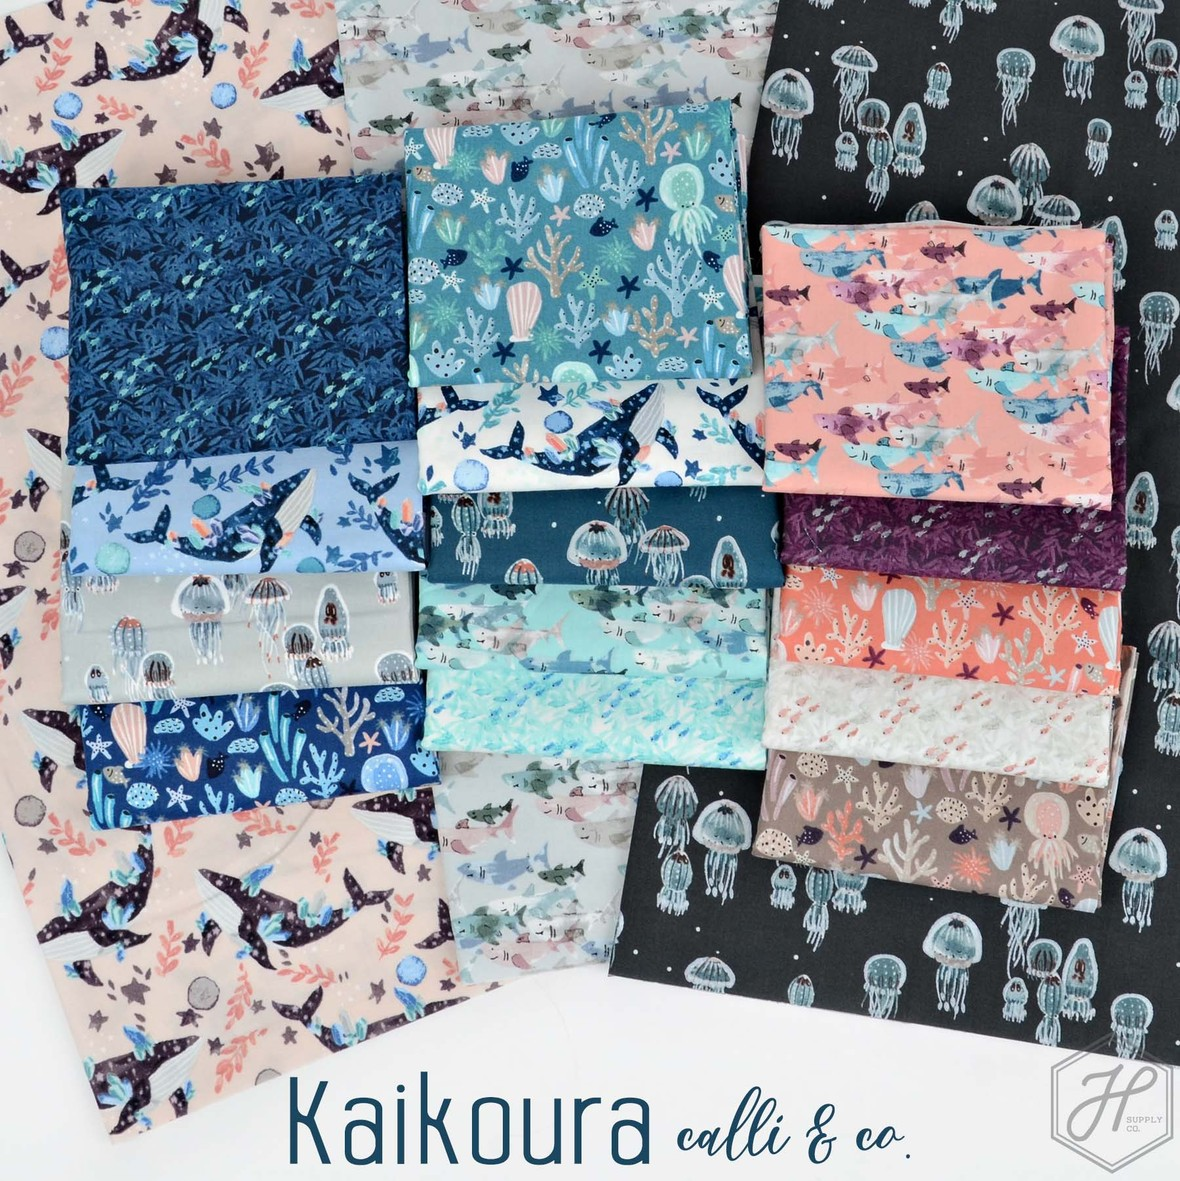 Kaikoura fabric poster Cotton and Steel at Hawthorne Supply Co